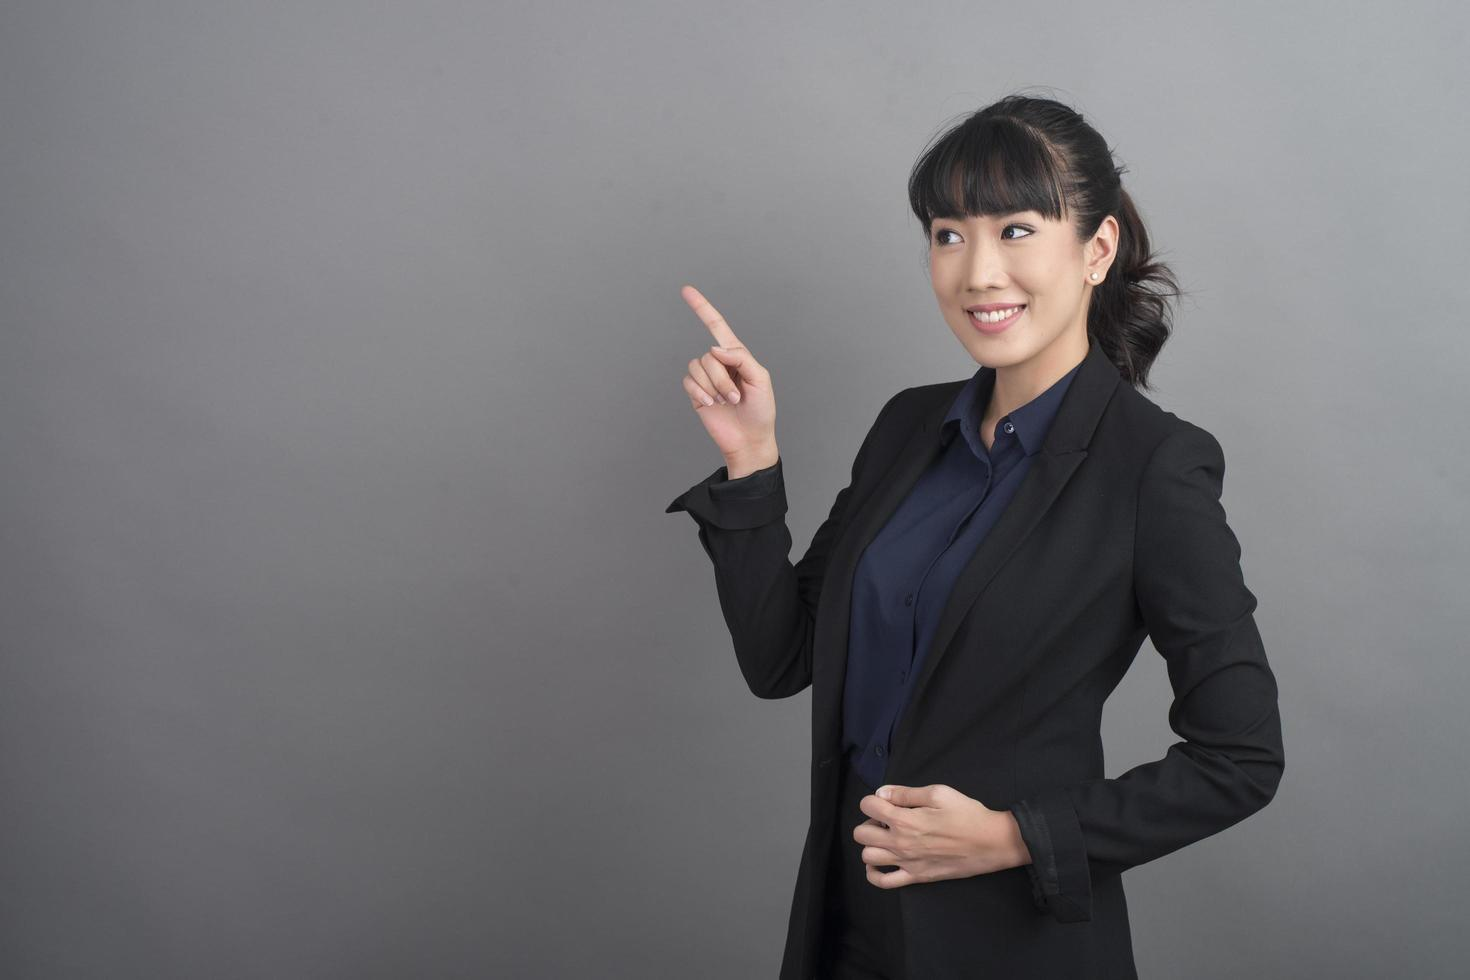 Smiling business woman in blazer on grey background photo